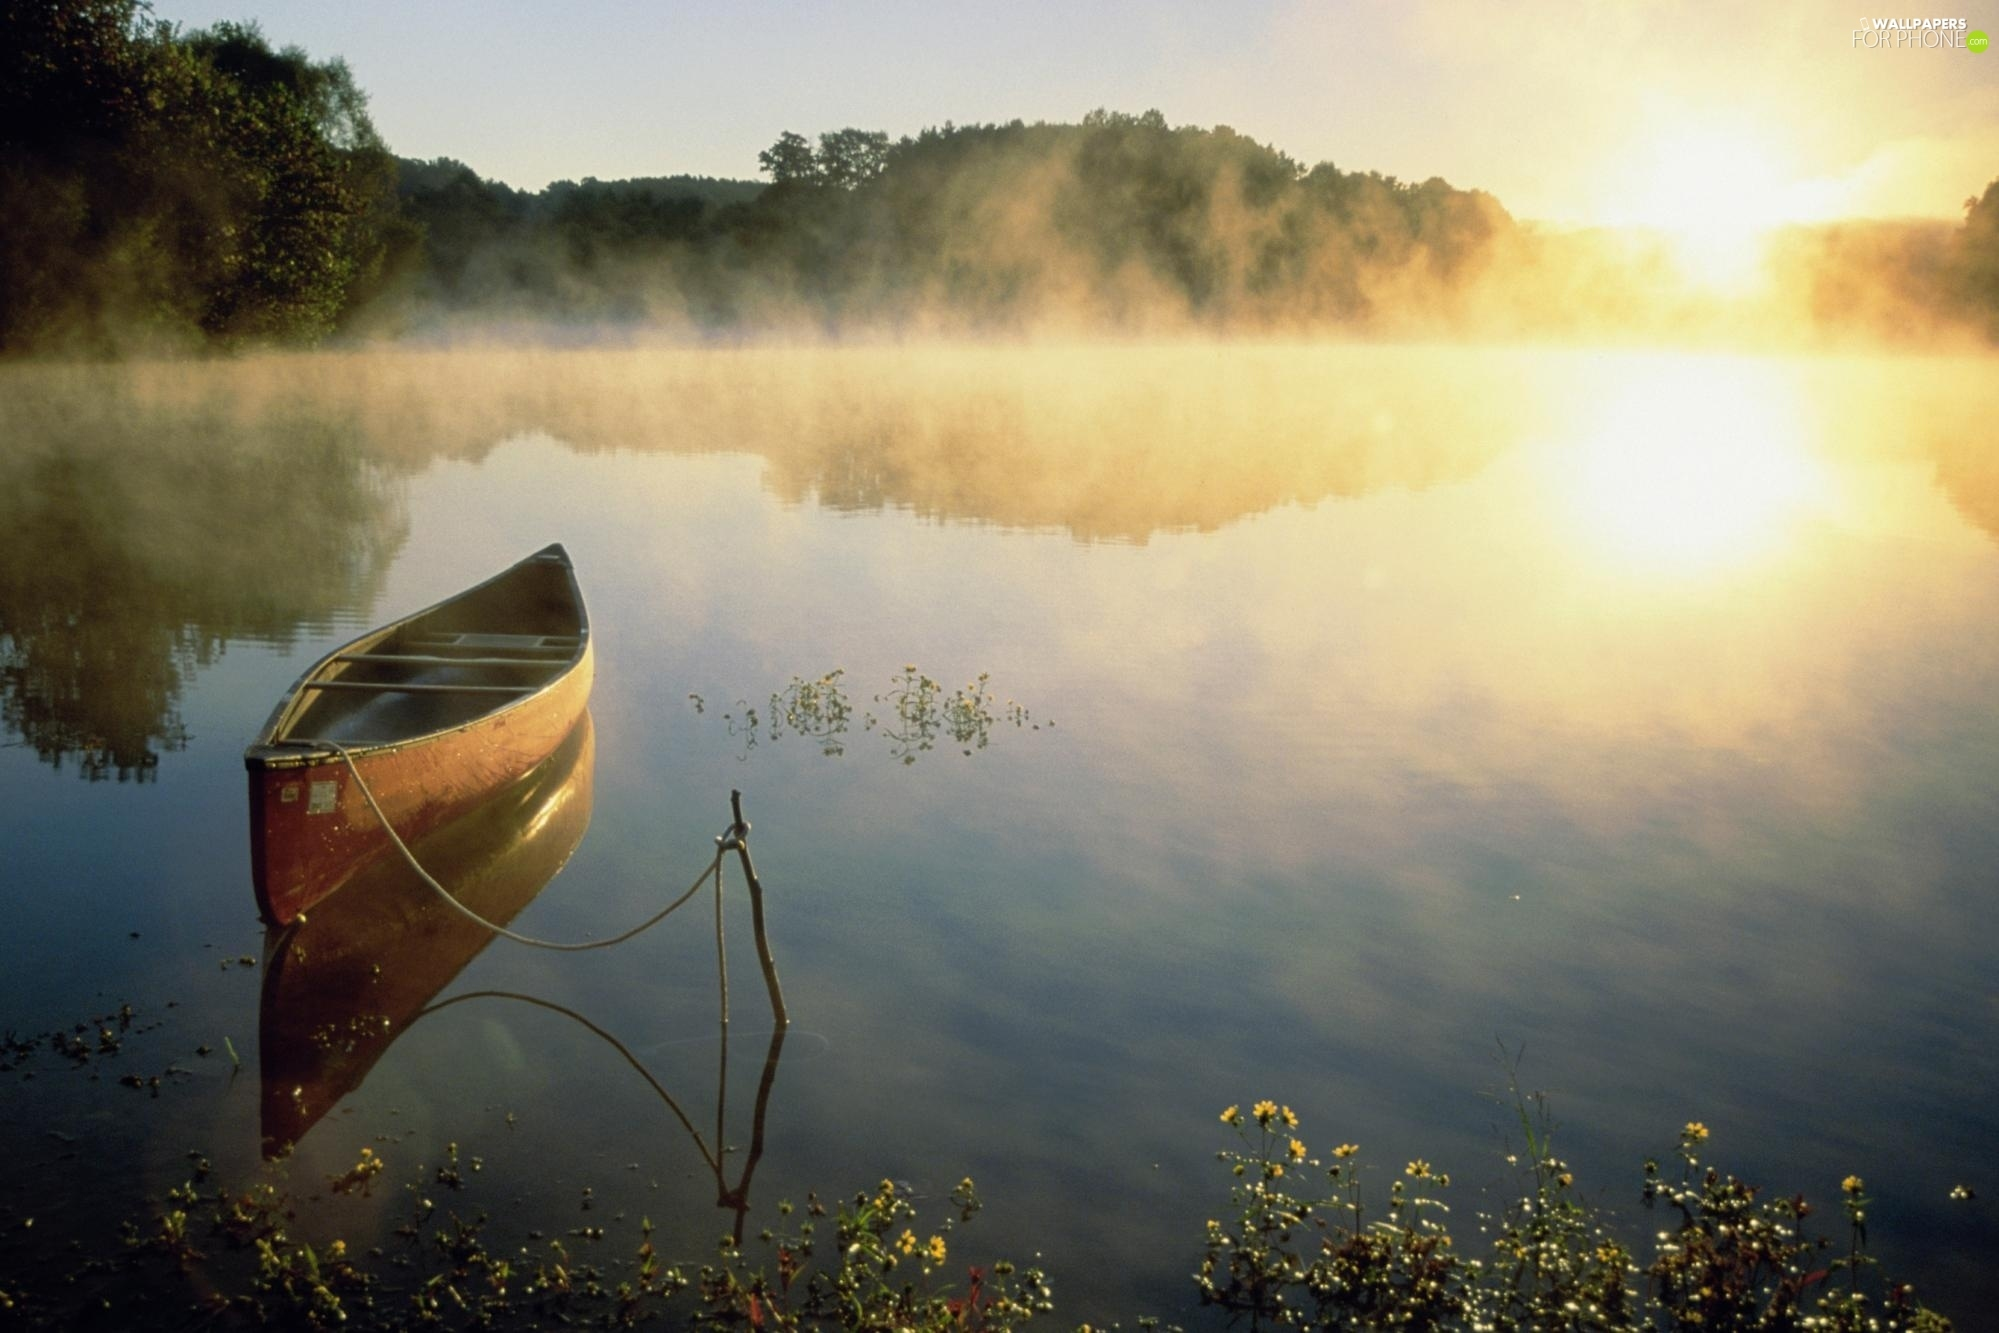 lake, sun, Boat, forest, west, water, Fog